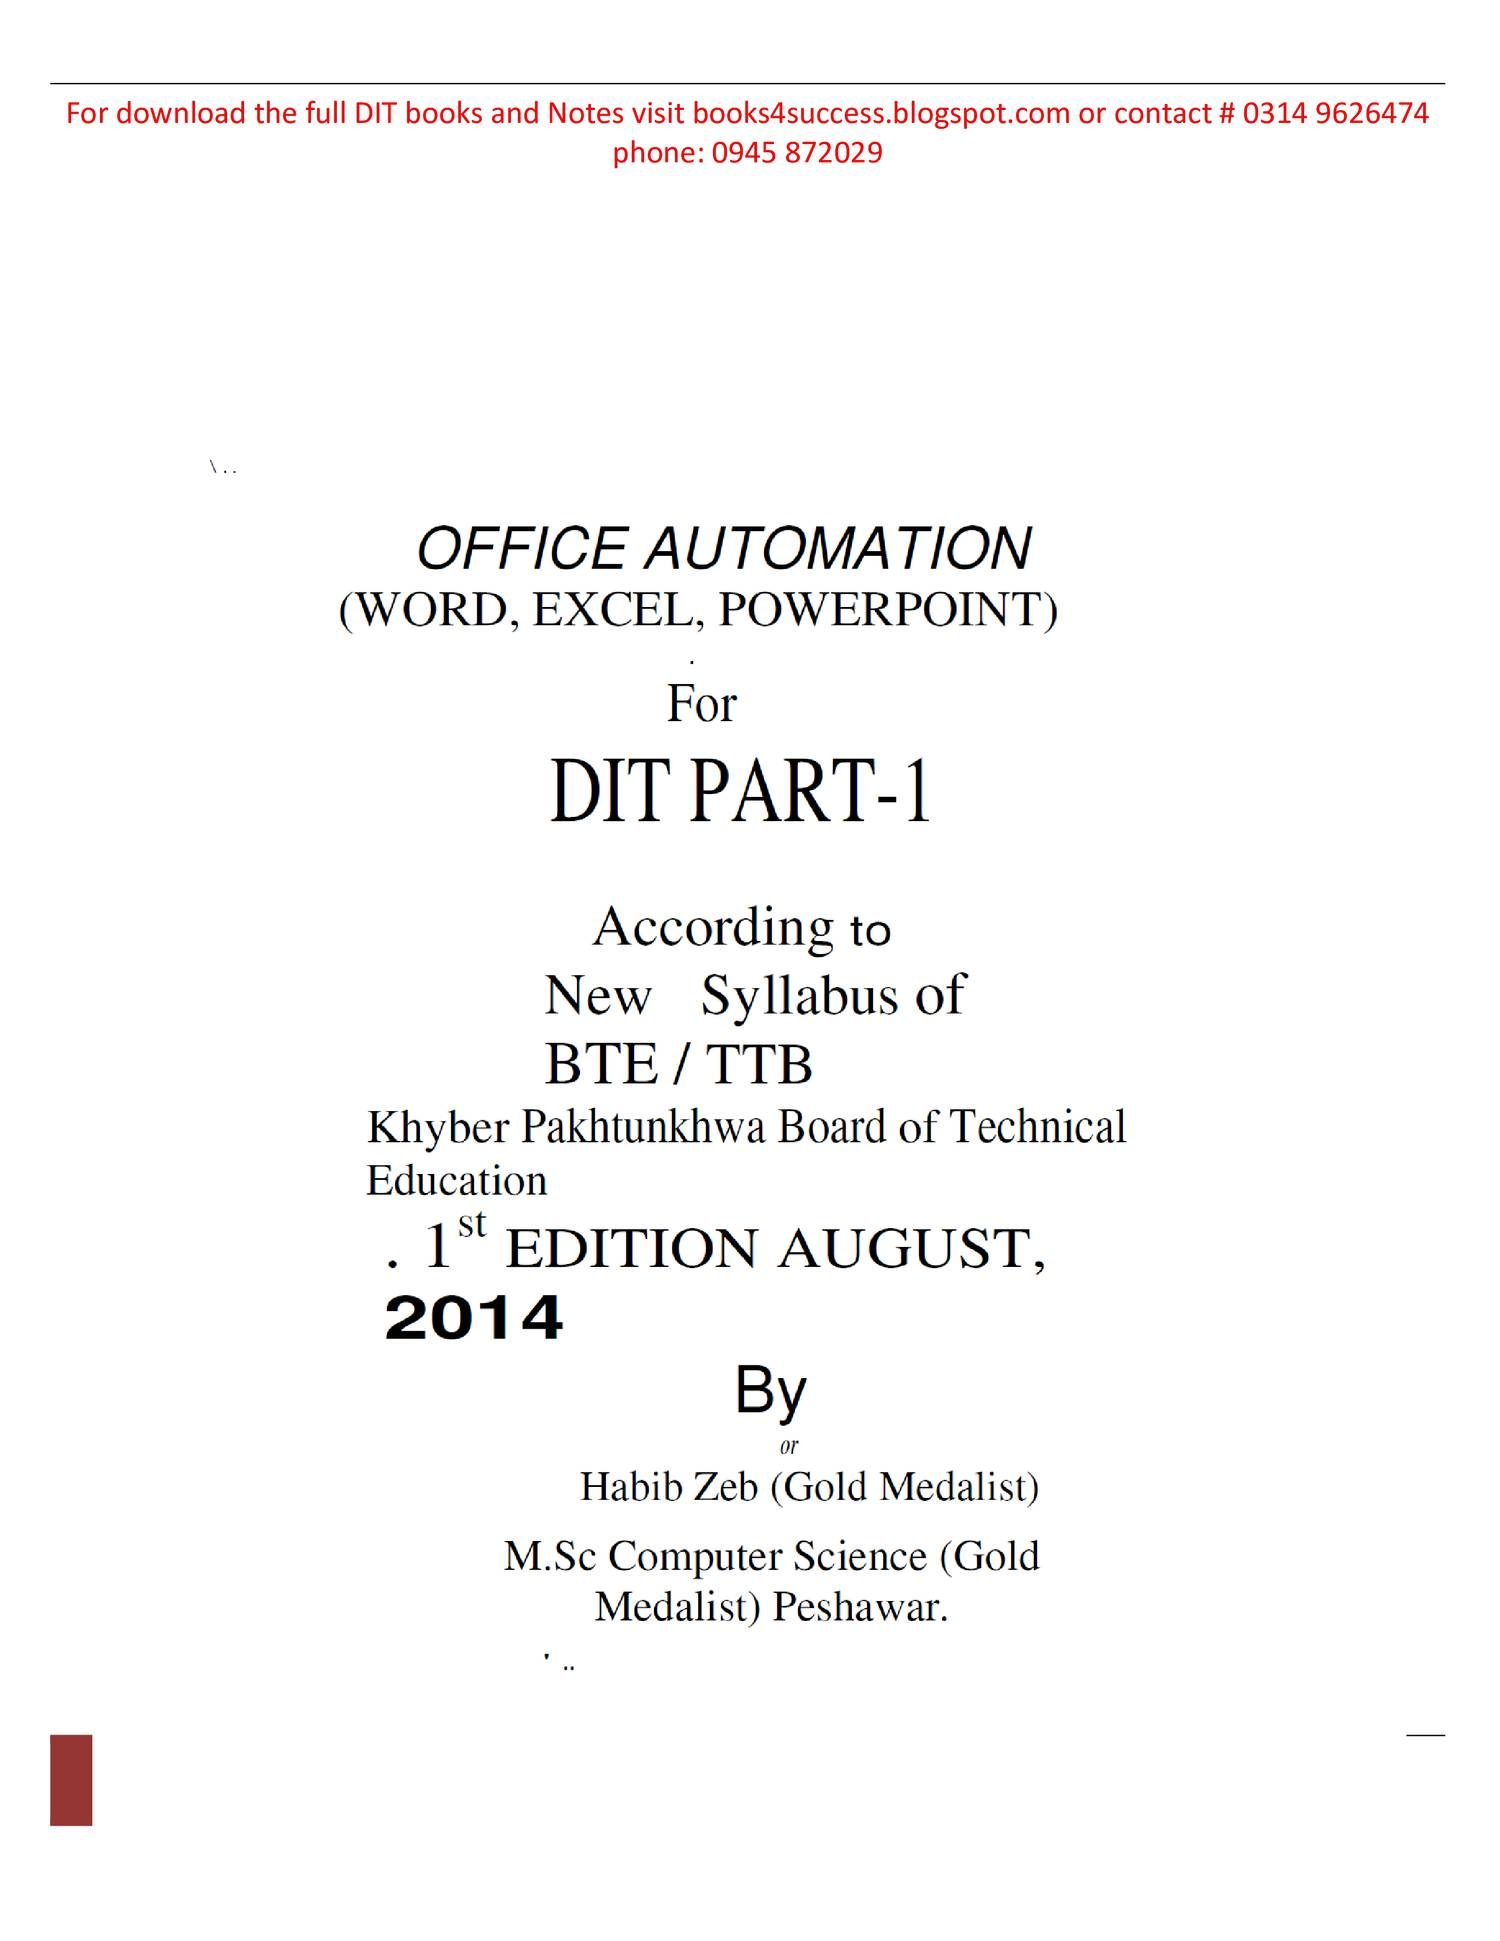 OFFICE AUTOMATION pdf | DocDroid